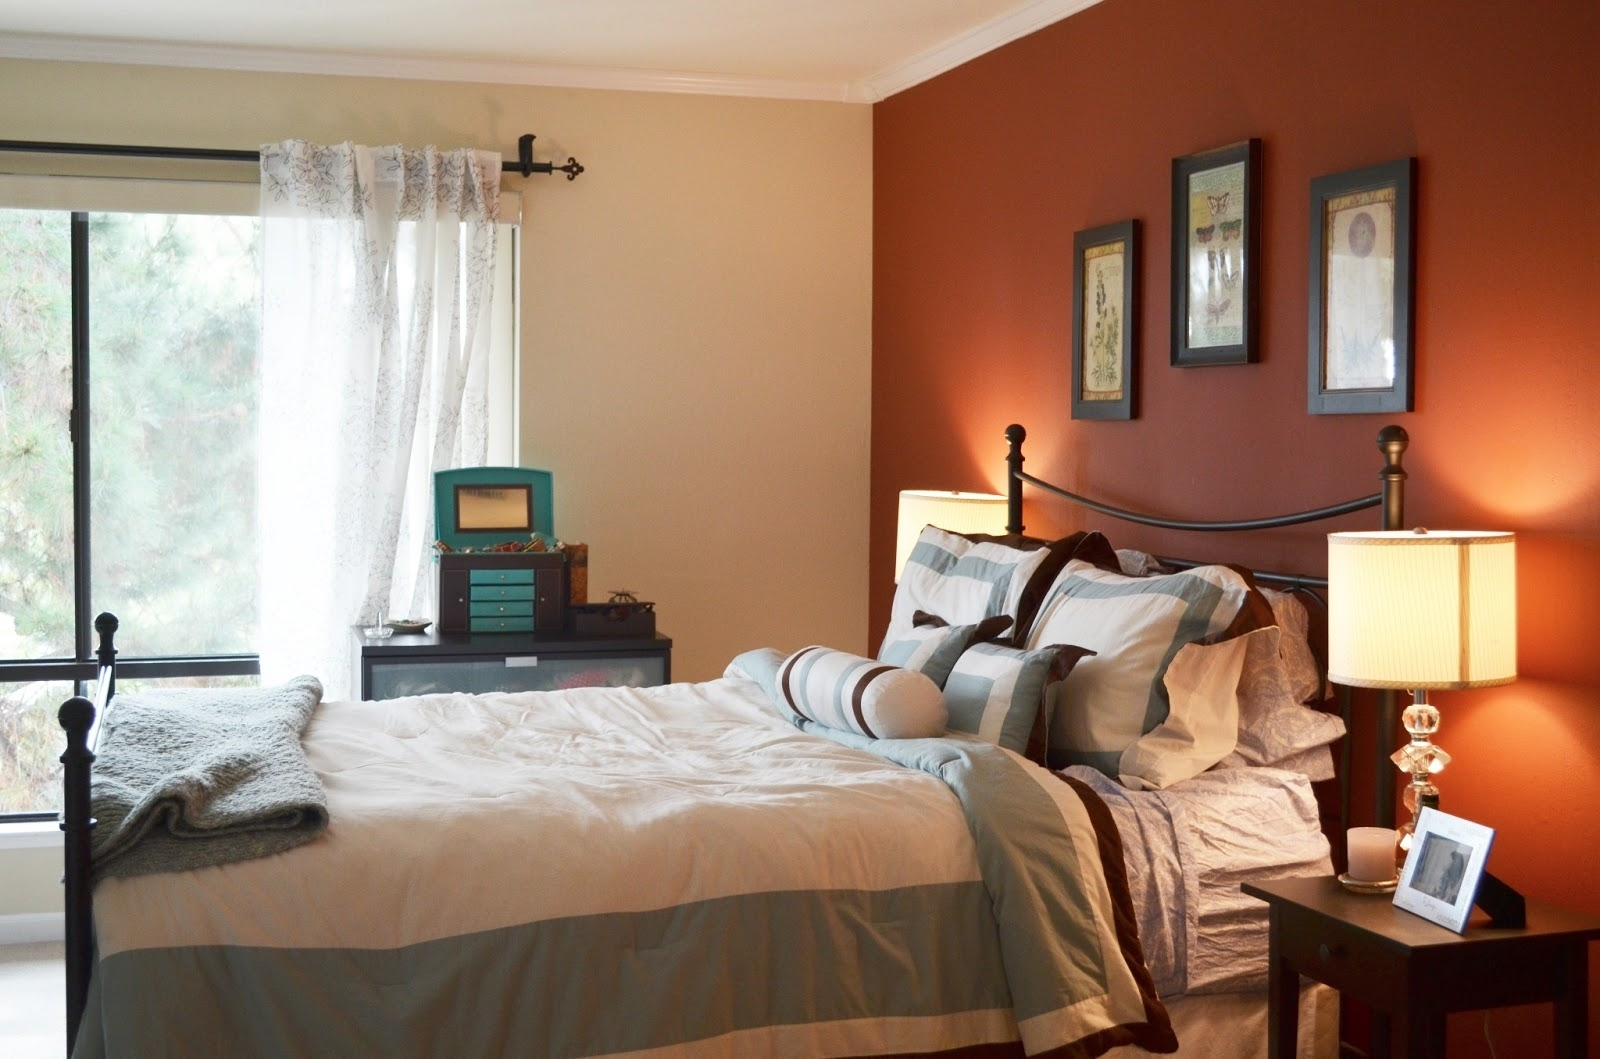 Charming Bedroom Design With Orange Accents Wall Painted And Inside 2017 Wall Colors And Accents (View 4 of 15)